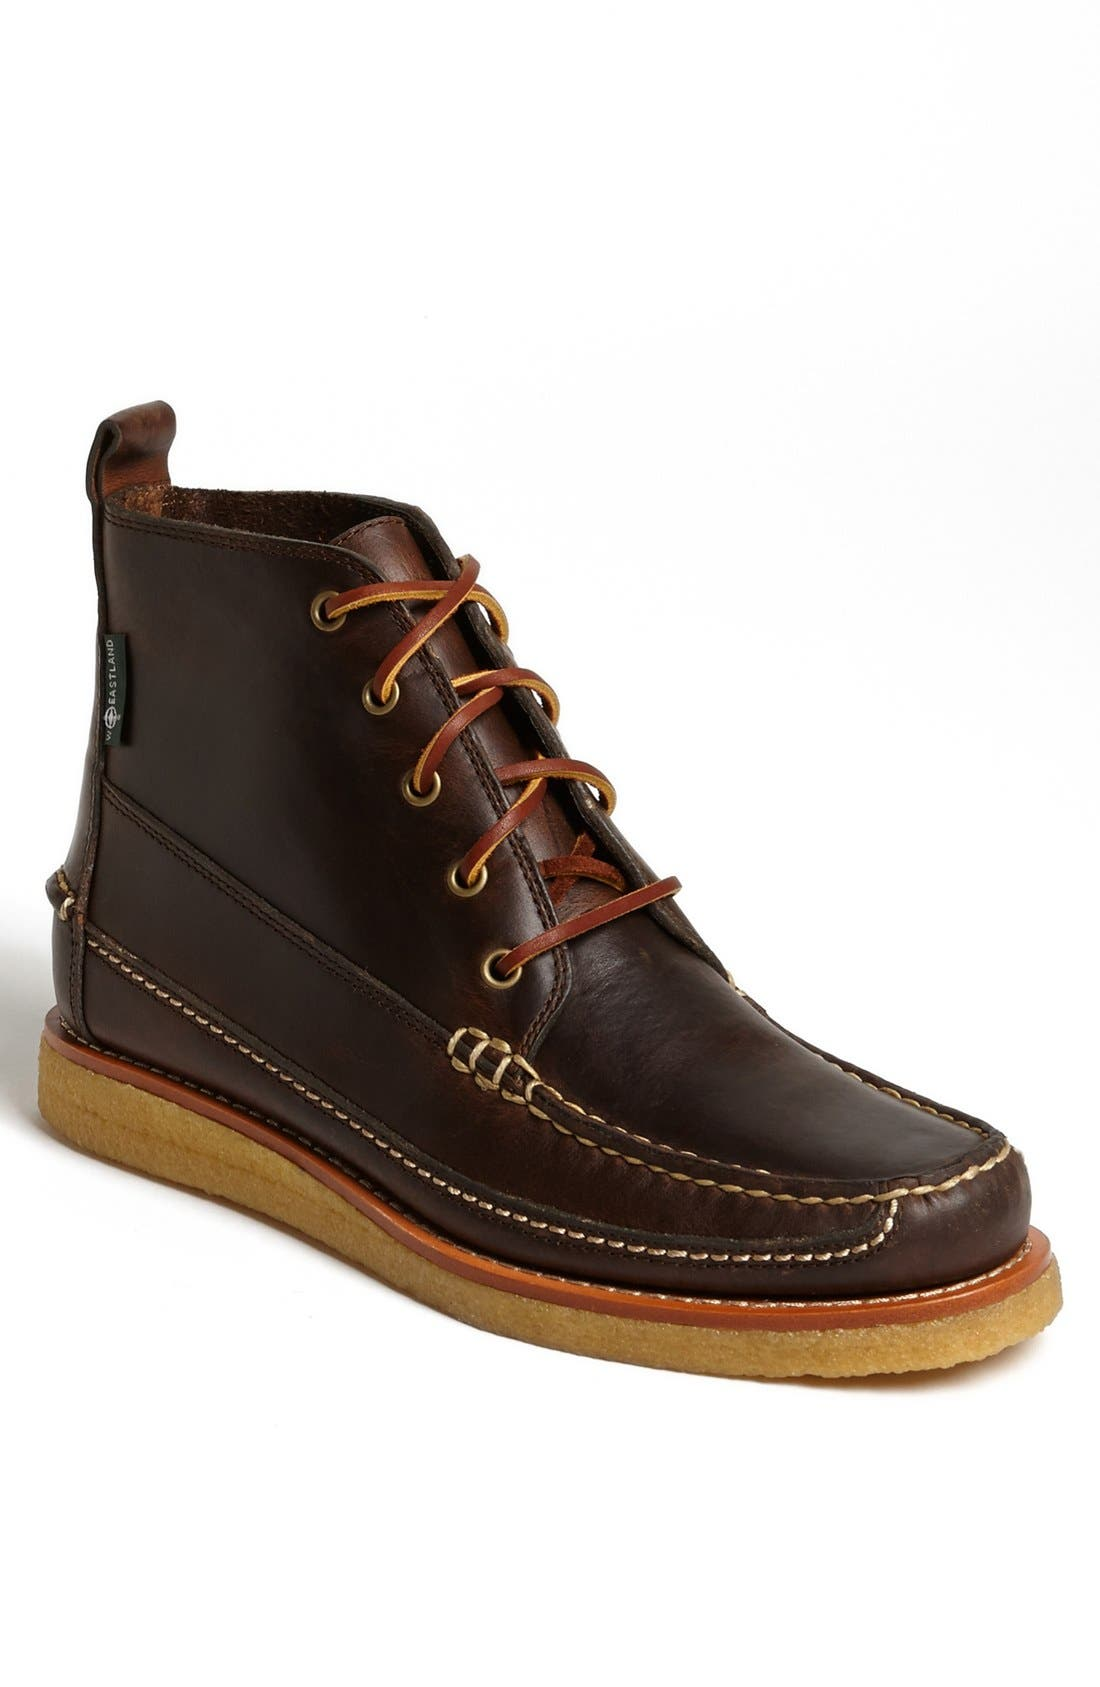 Eastland 'Stonington 1955' Boot